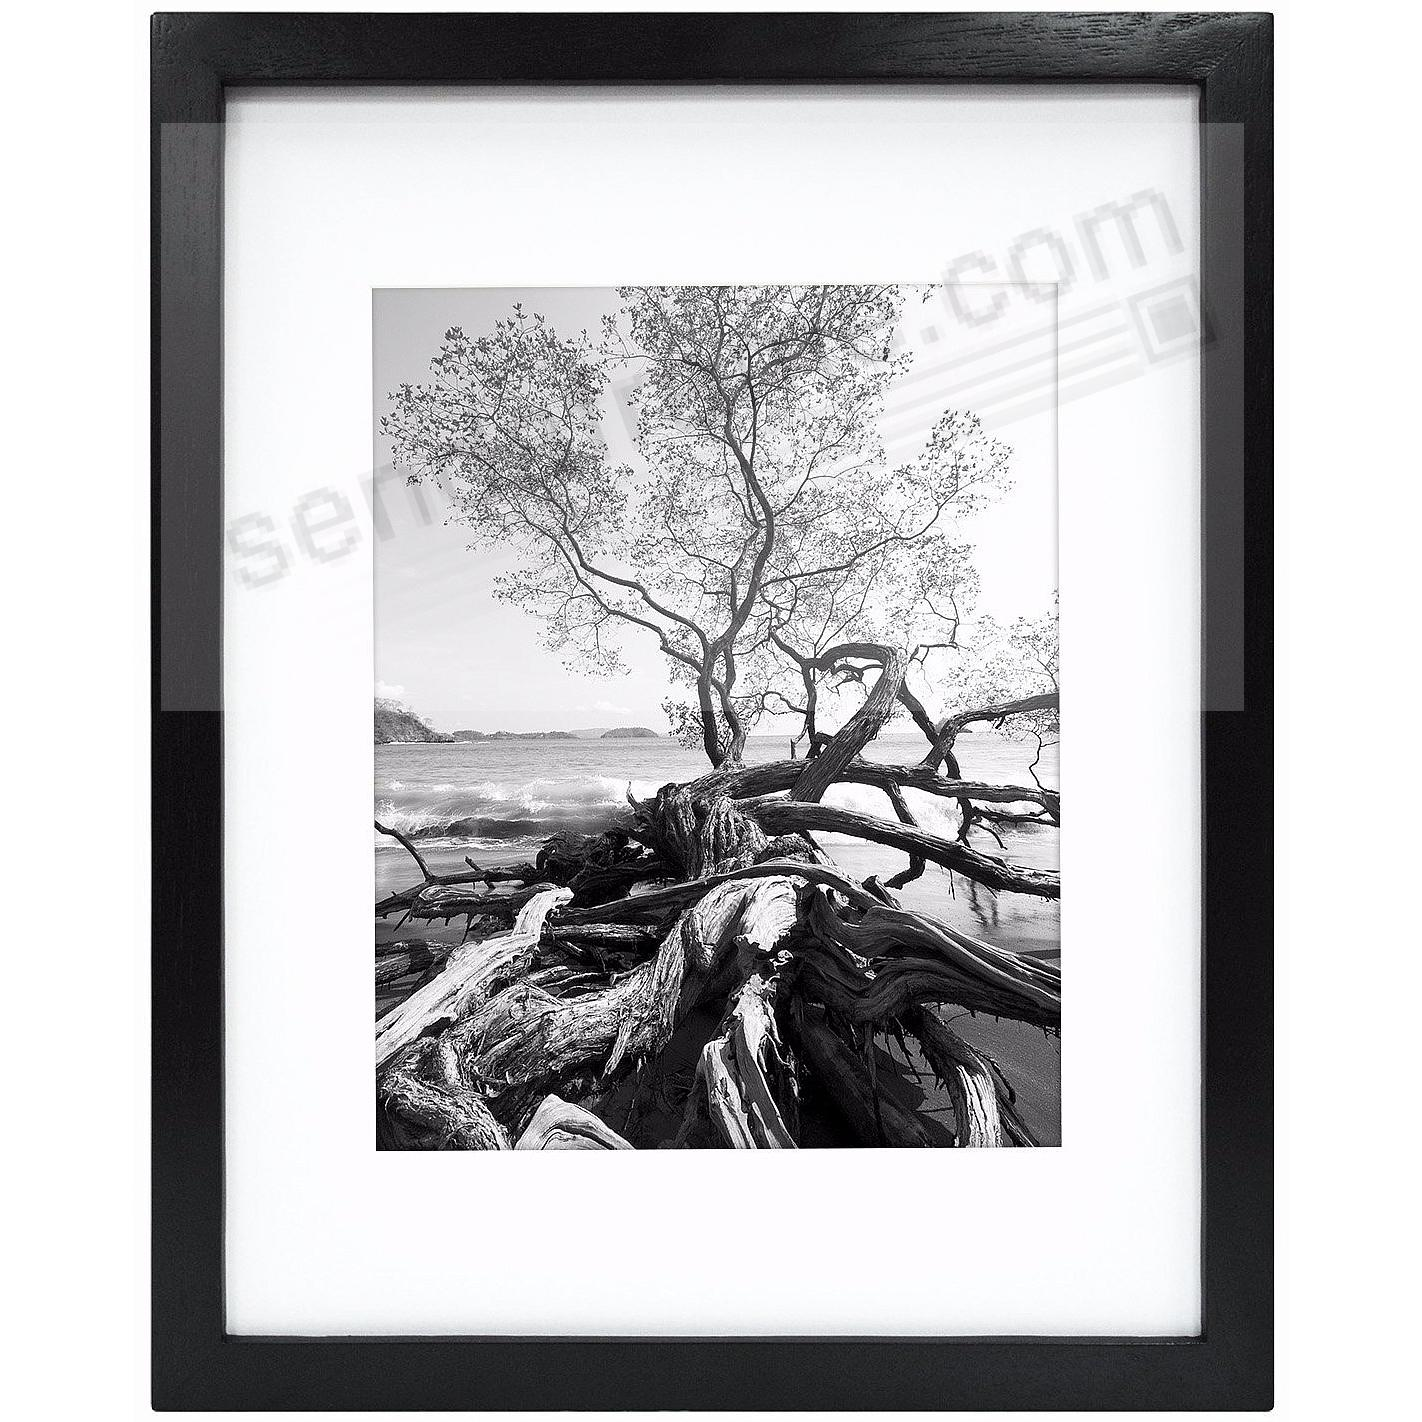 Art Shadow-Box 8x10/5x7 Black Wood frame w/1-3/8in depth by MCS®